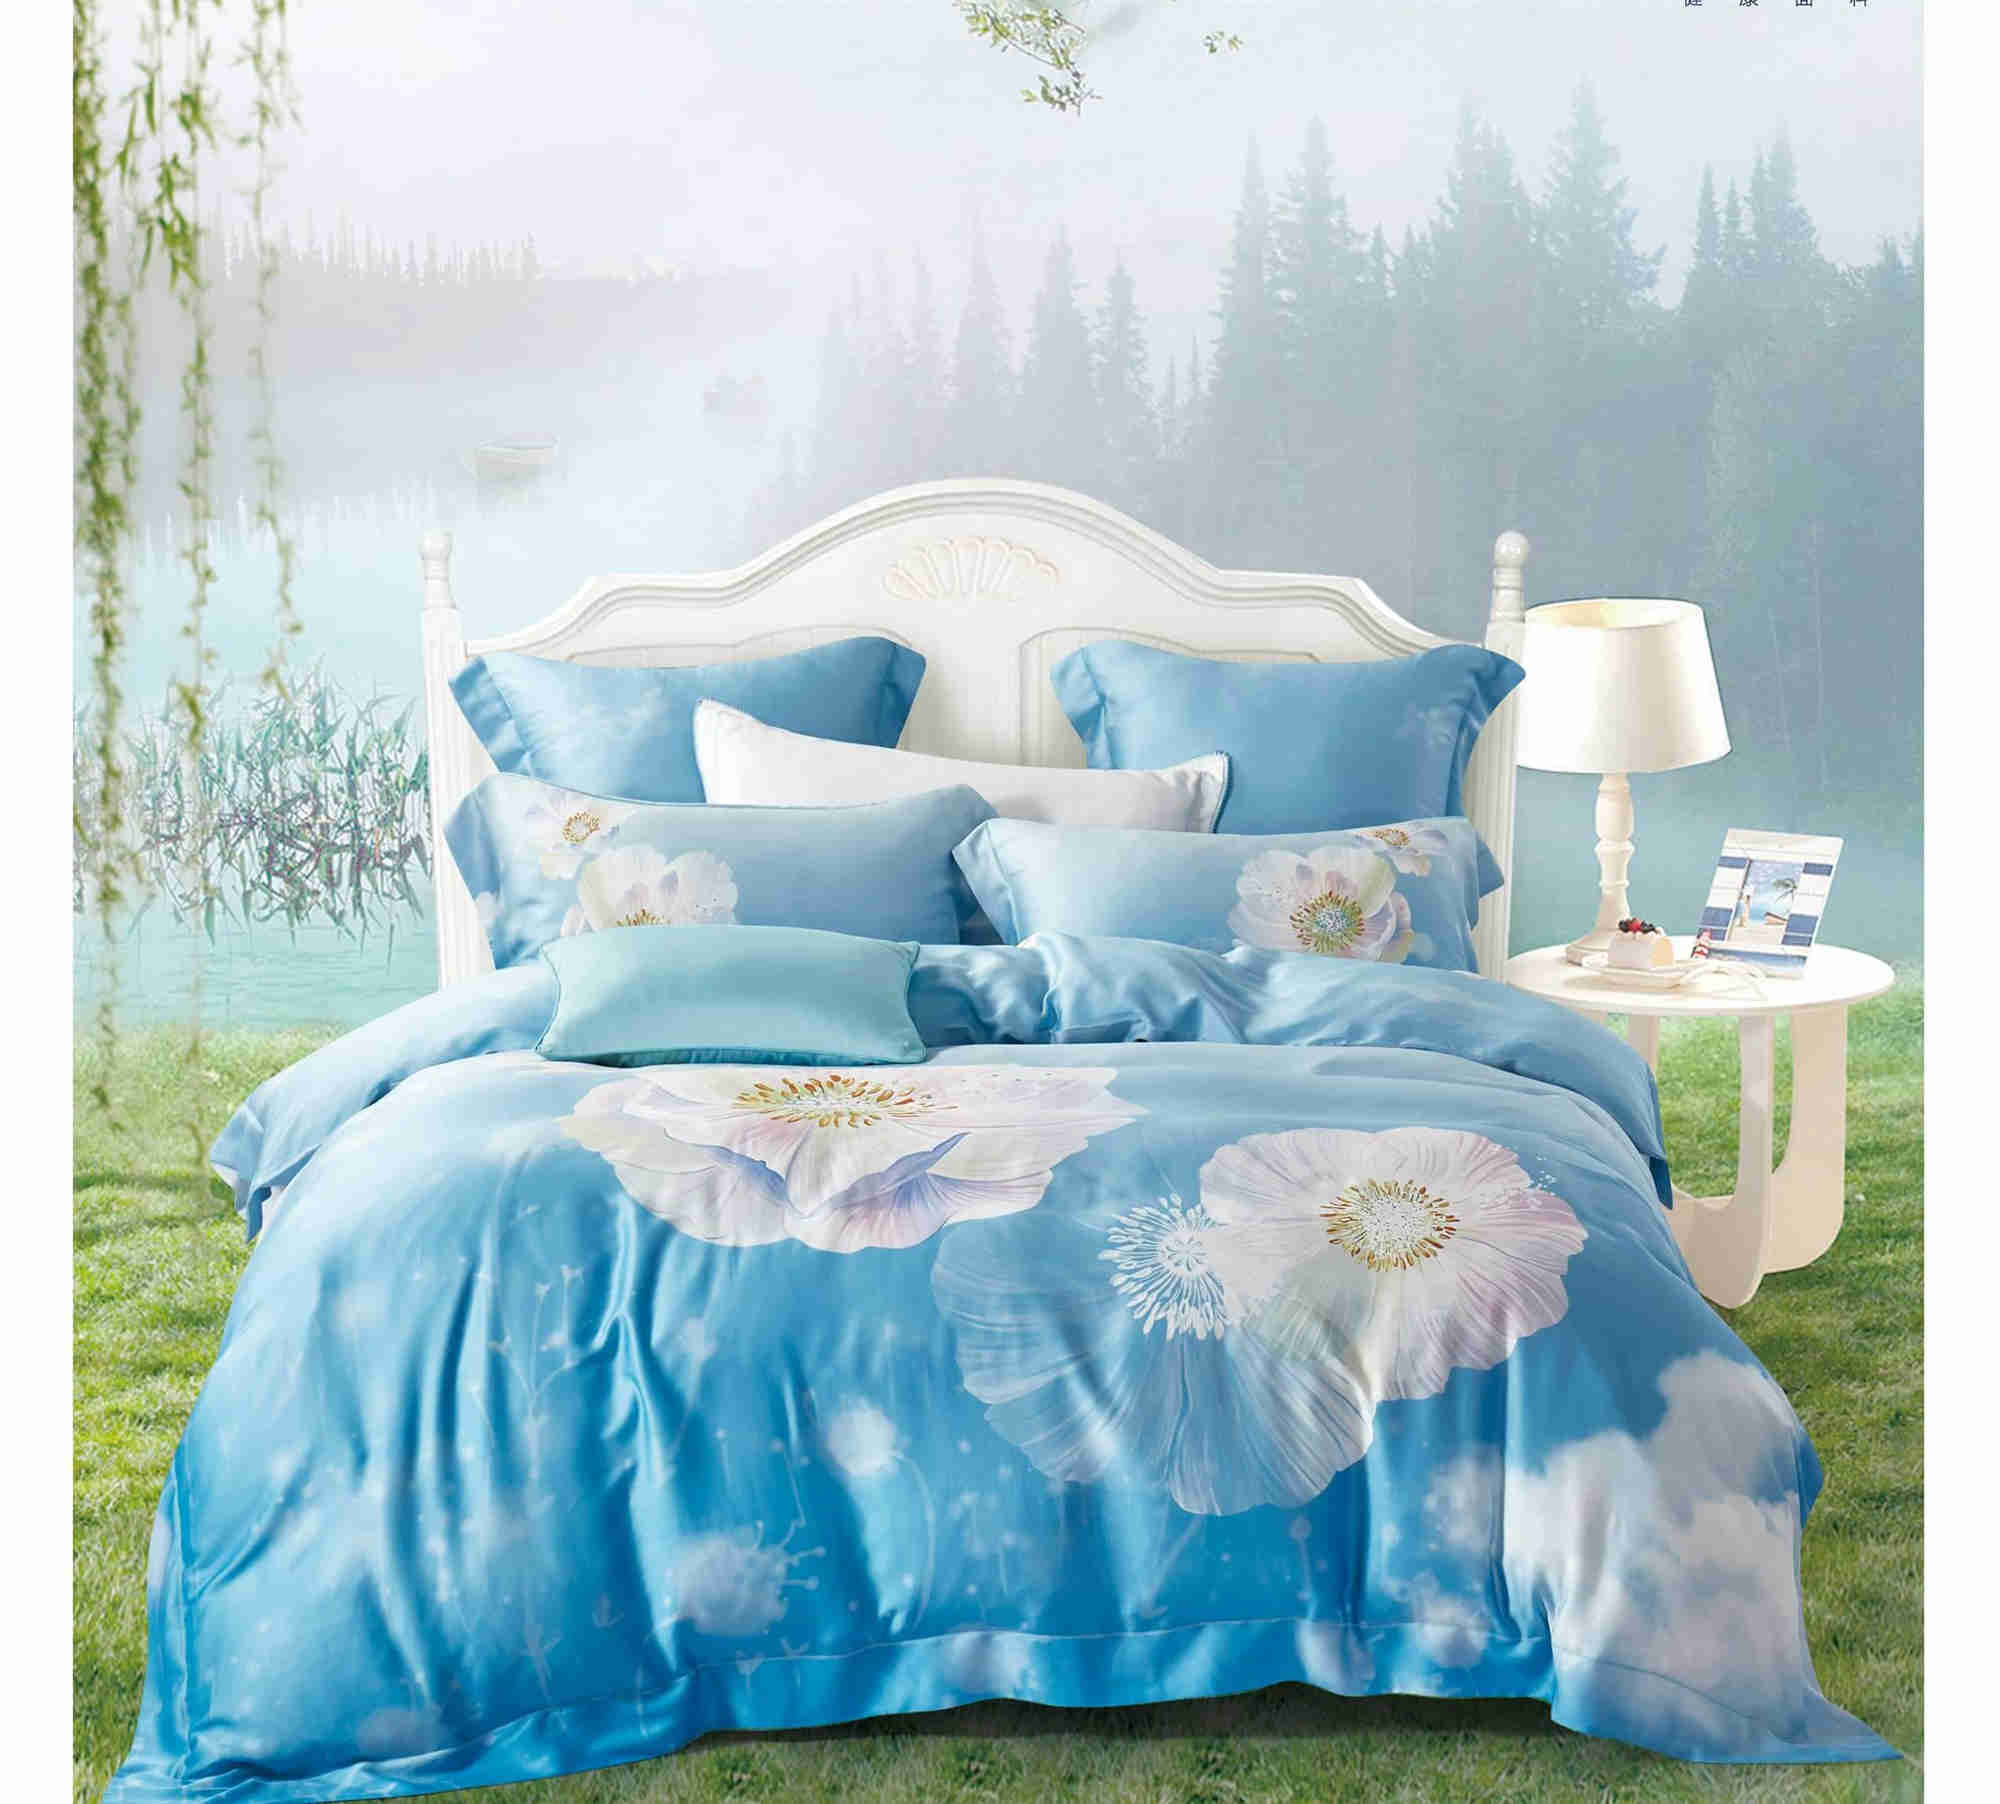 Tencel Lyocell Bedding Set